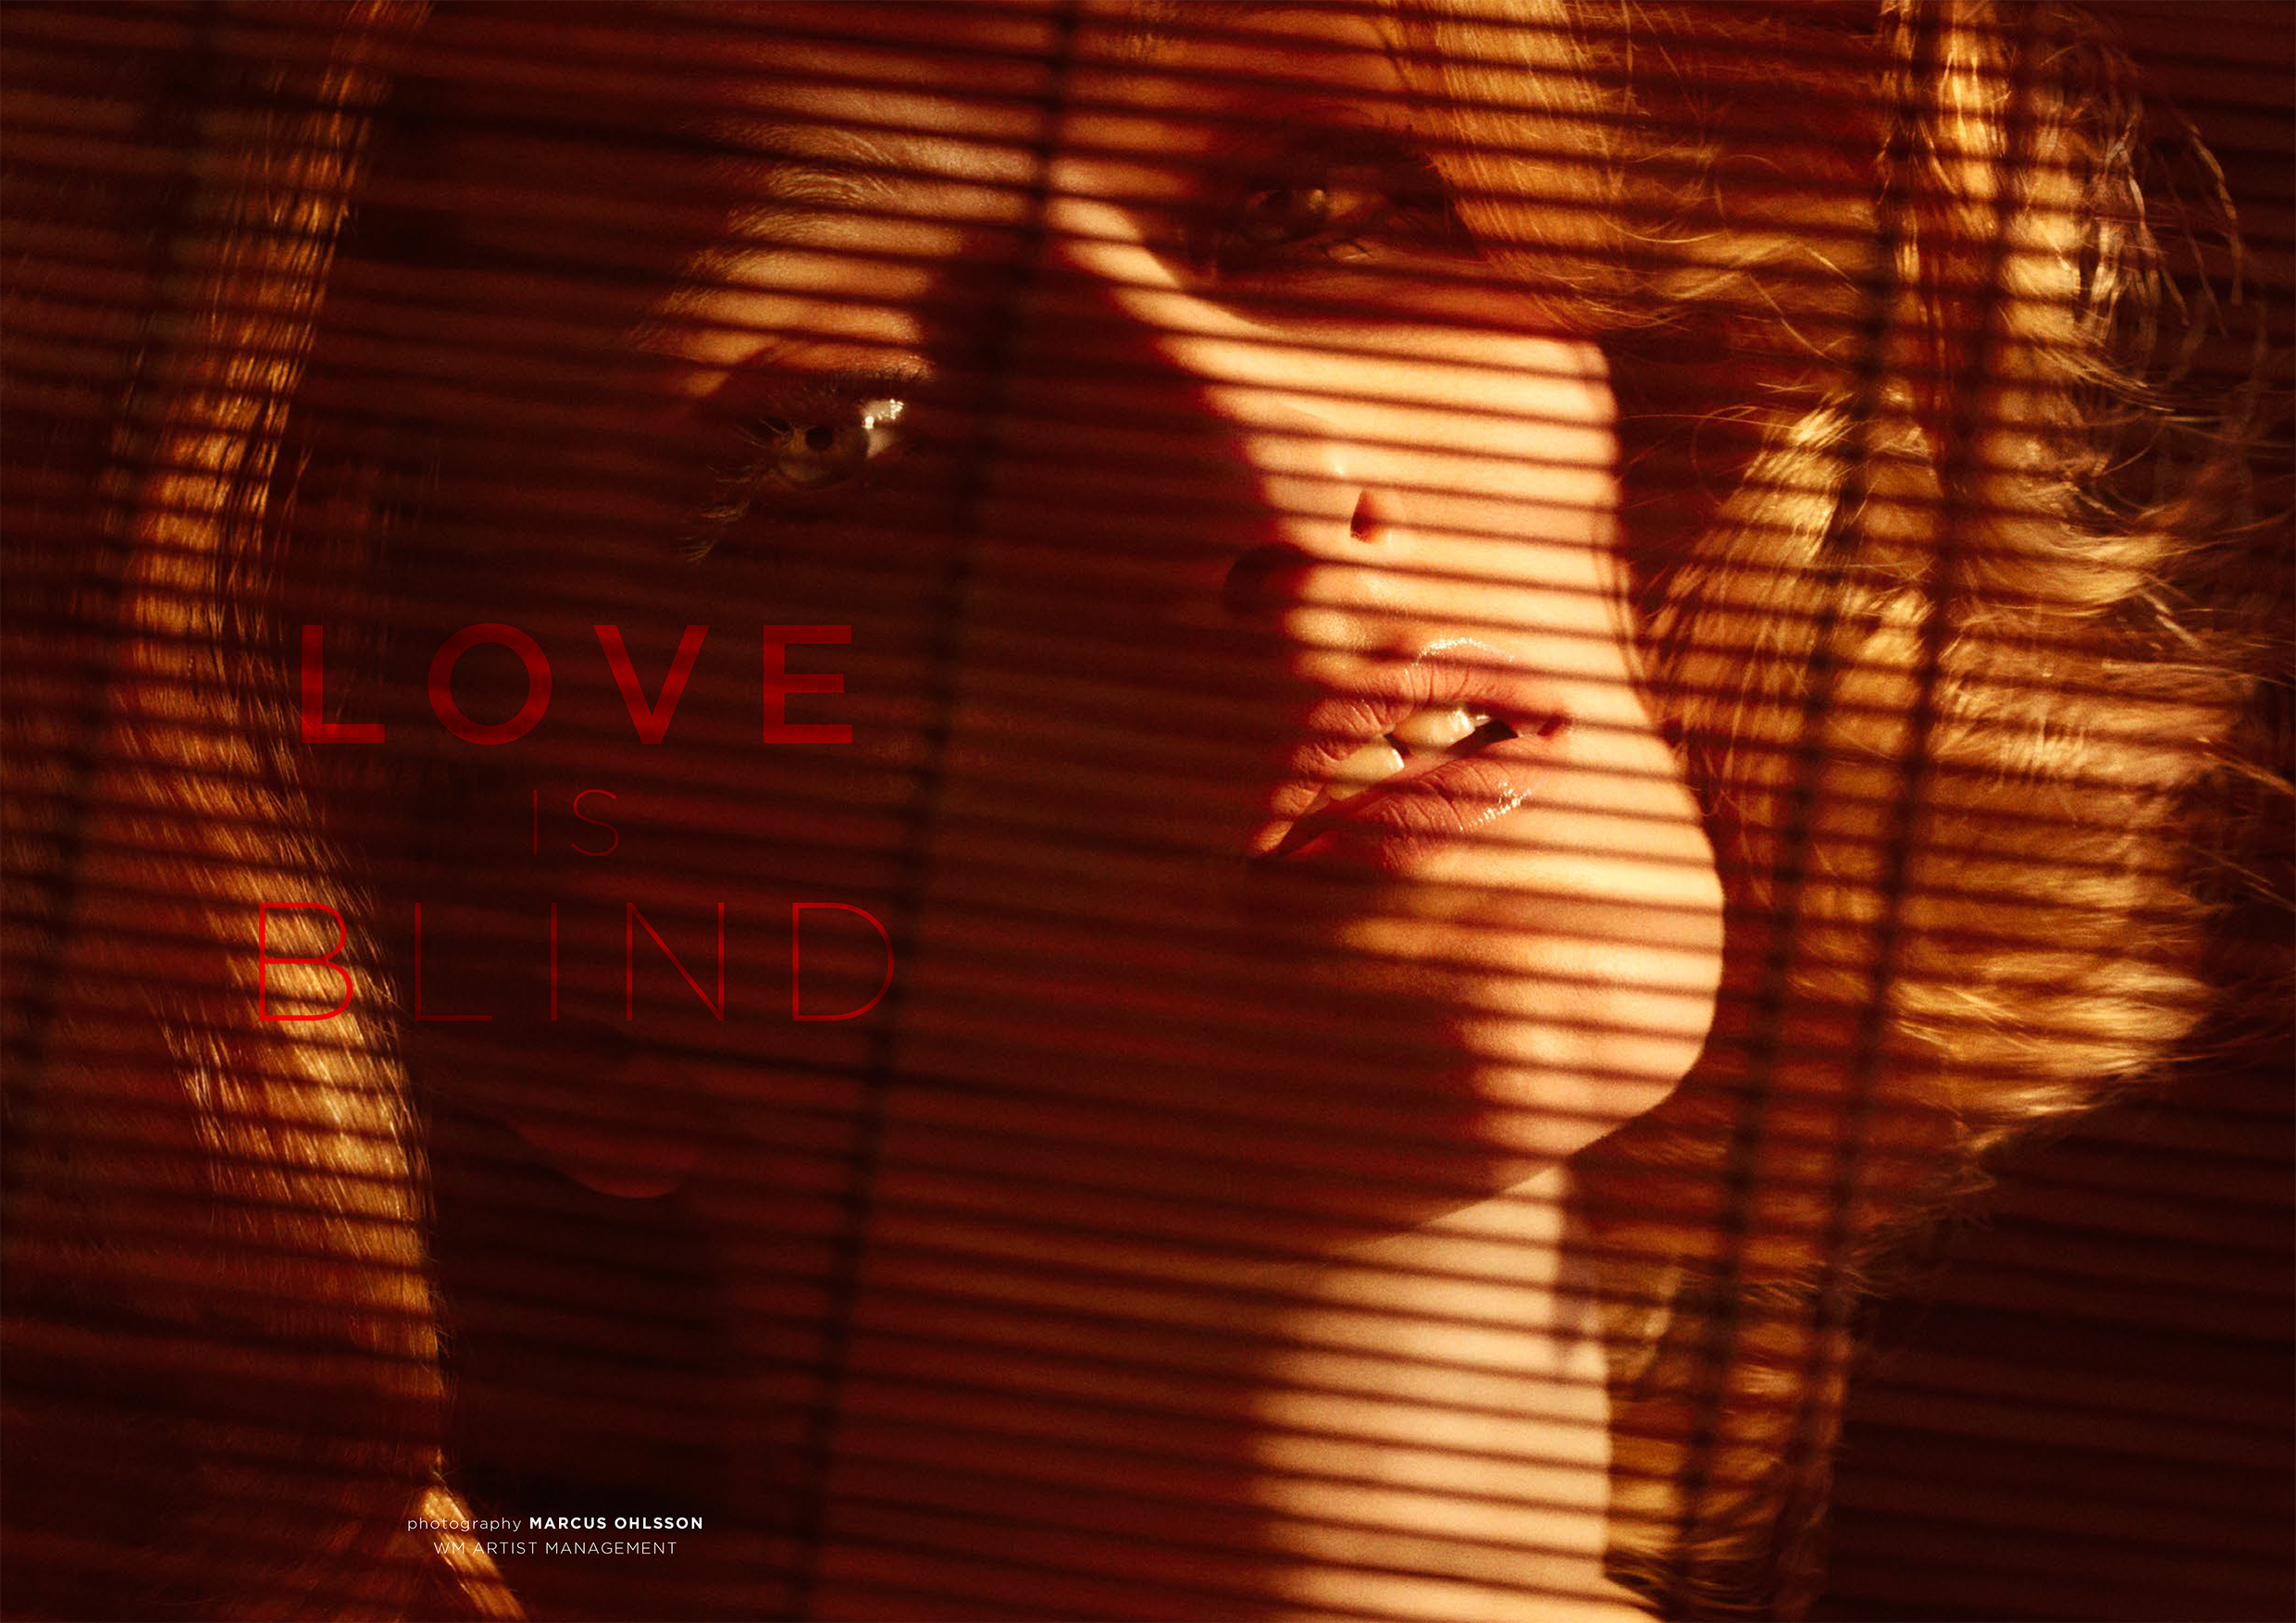 """LOVE IS BLIND"" PHOTOGRAPHER : Marcus Ohlsson   view story"